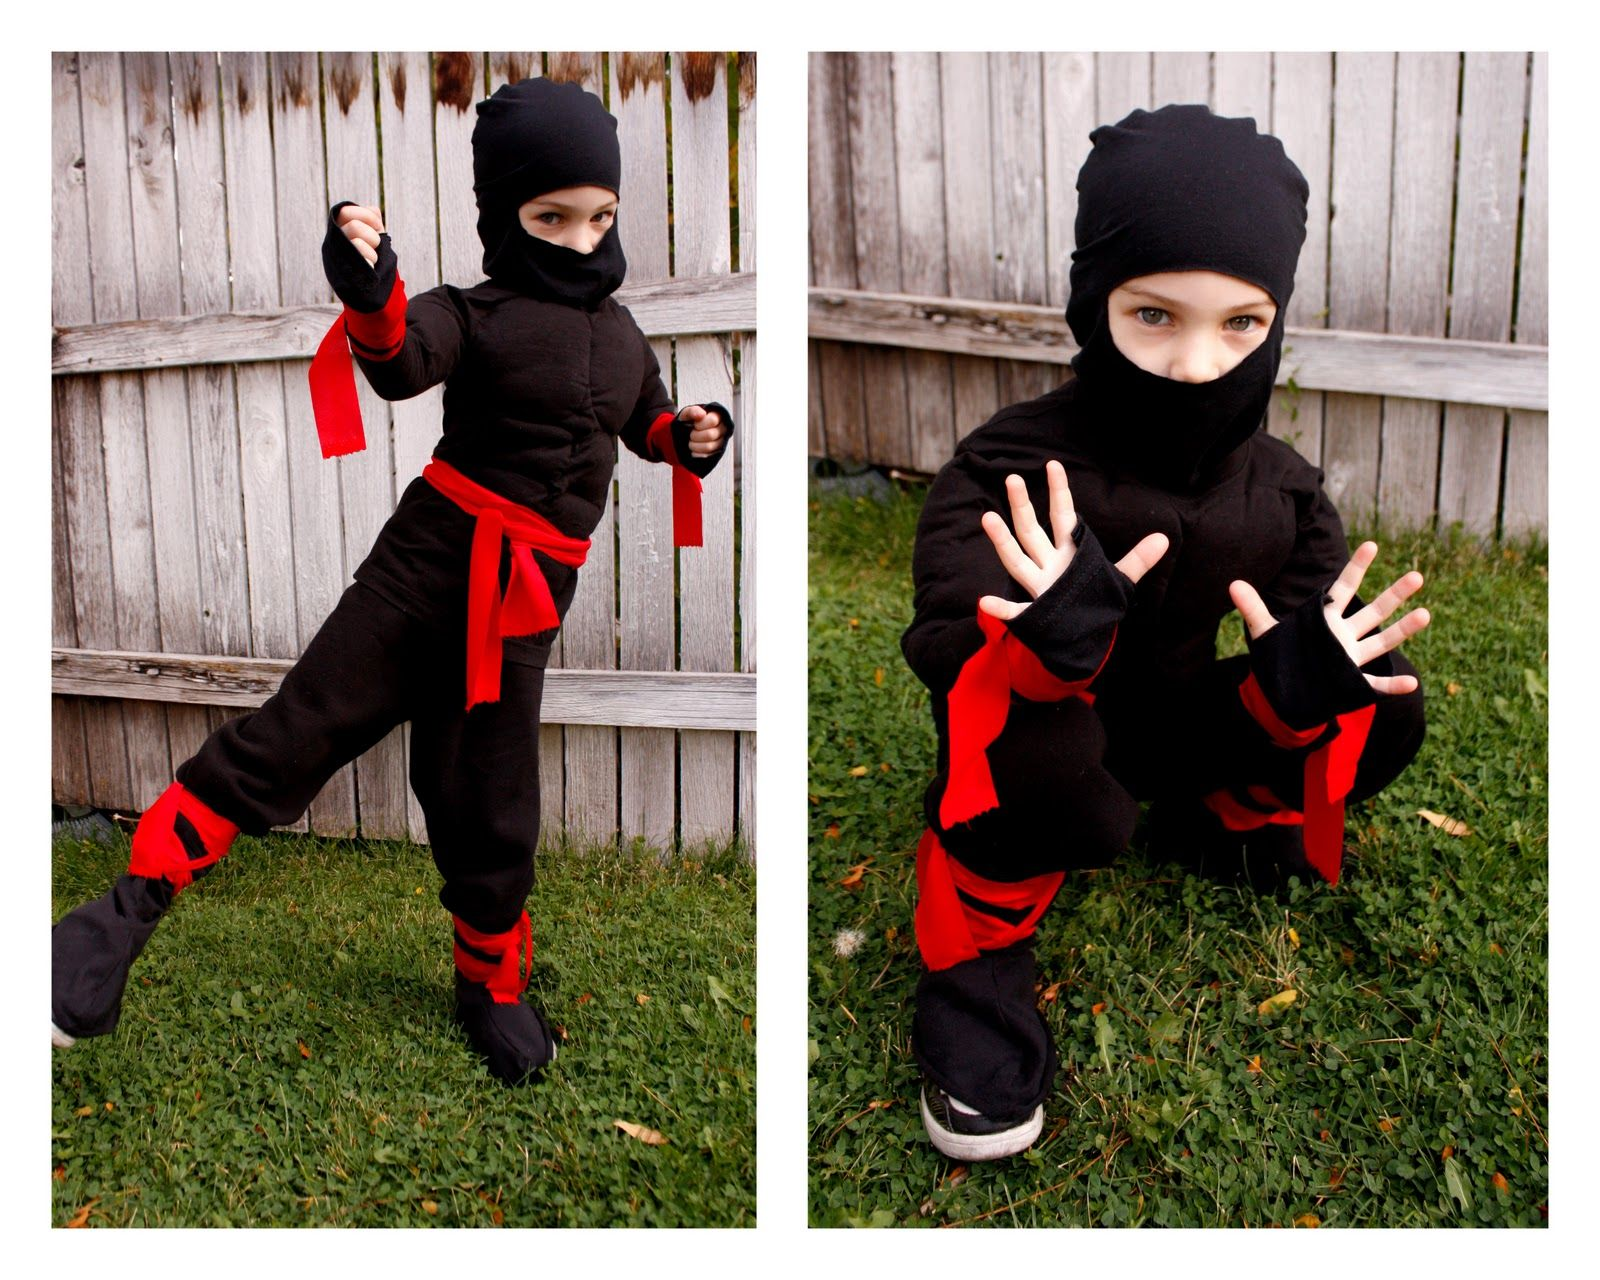 best 25 ninja costumes ideas on pinterest costume ninja ninja halloween costume and ninja. Black Bedroom Furniture Sets. Home Design Ideas